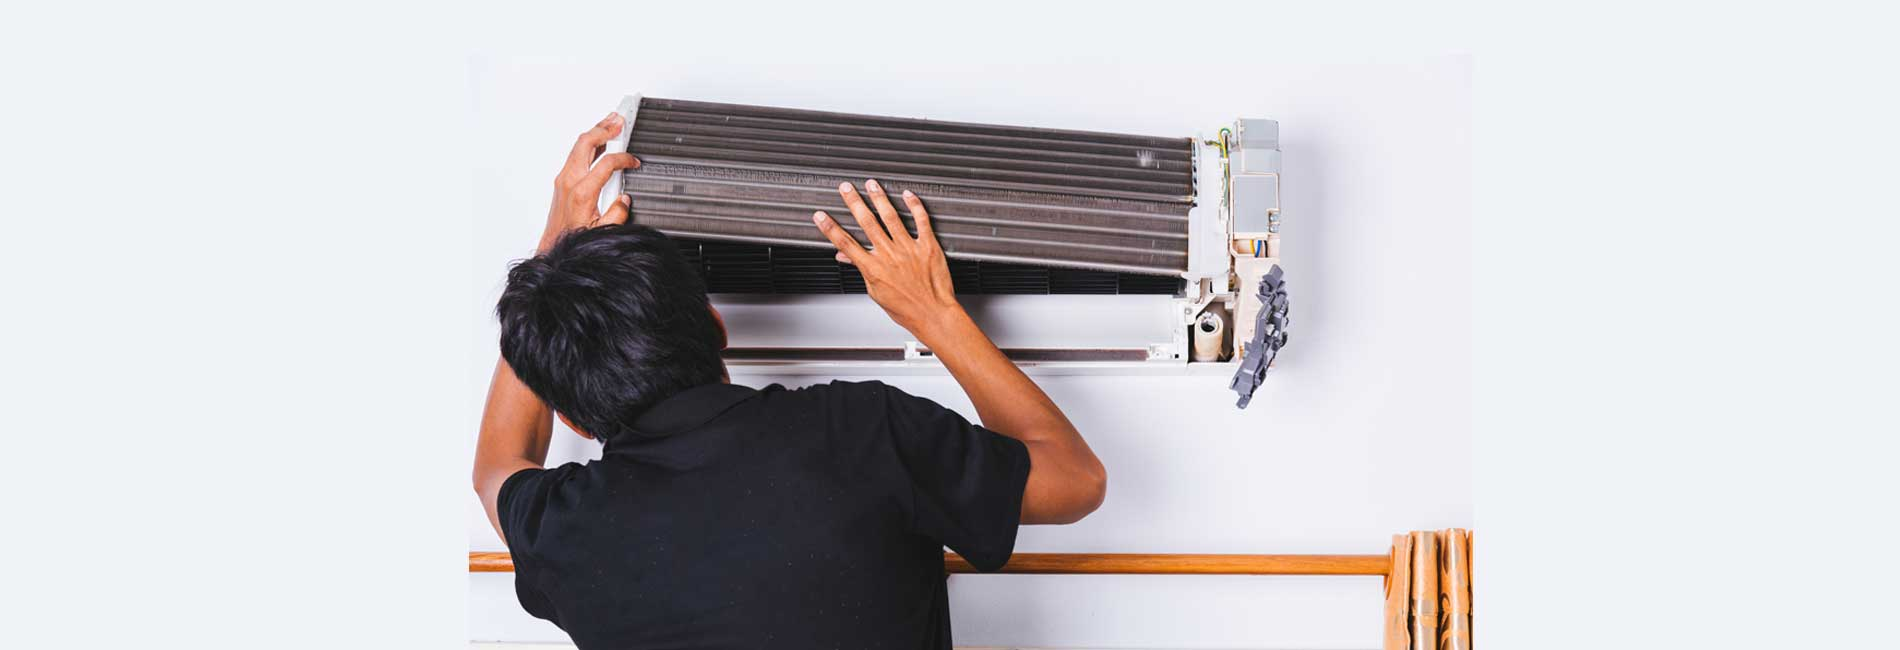 Bluestar Air Condition Repair in Muttukadu